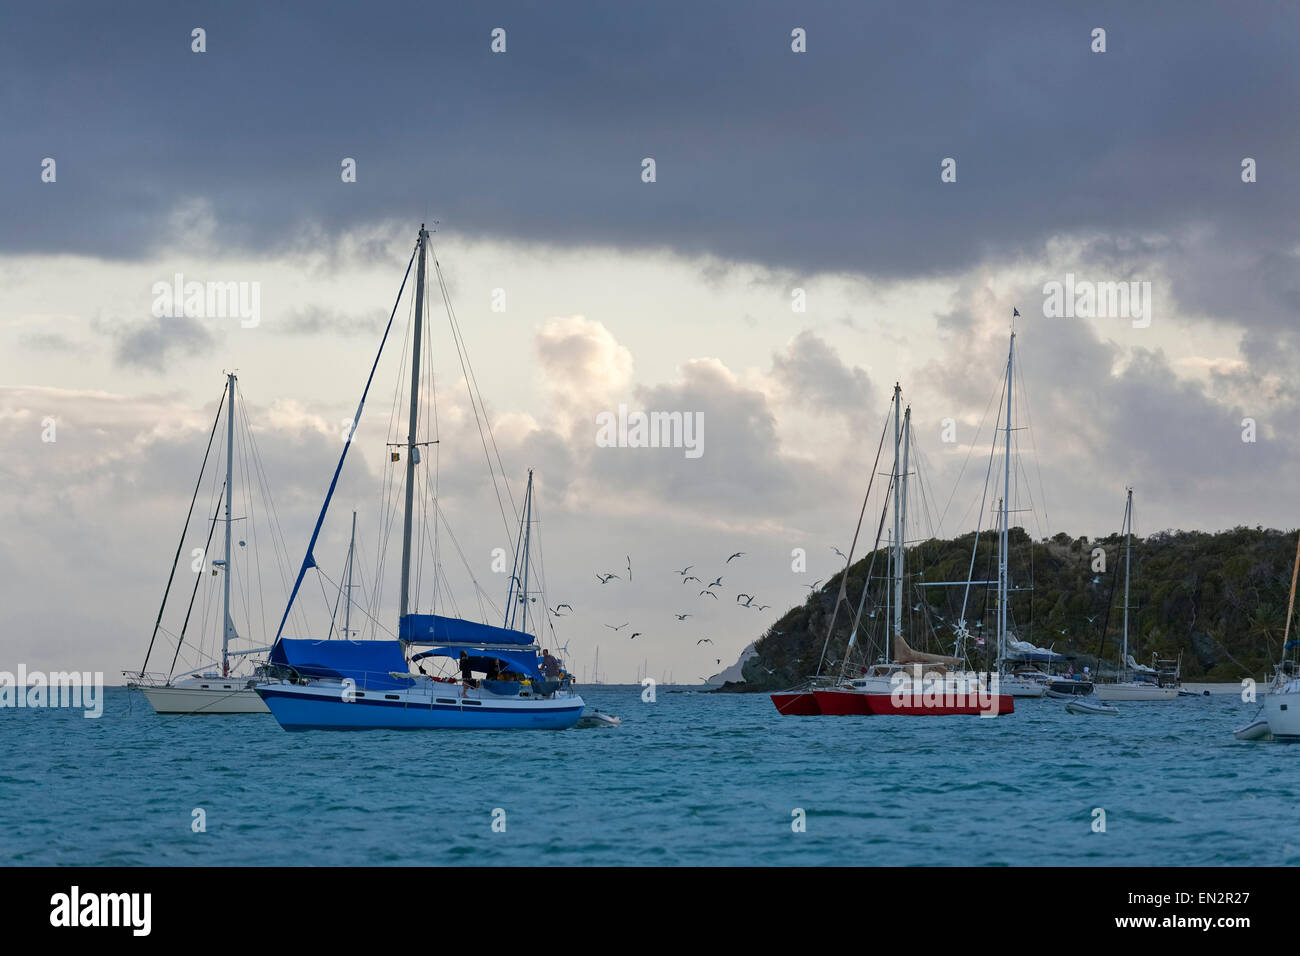 Sailboats anchored for the evening, Tobago Cays Marine Park, Grenadines - Stock Image